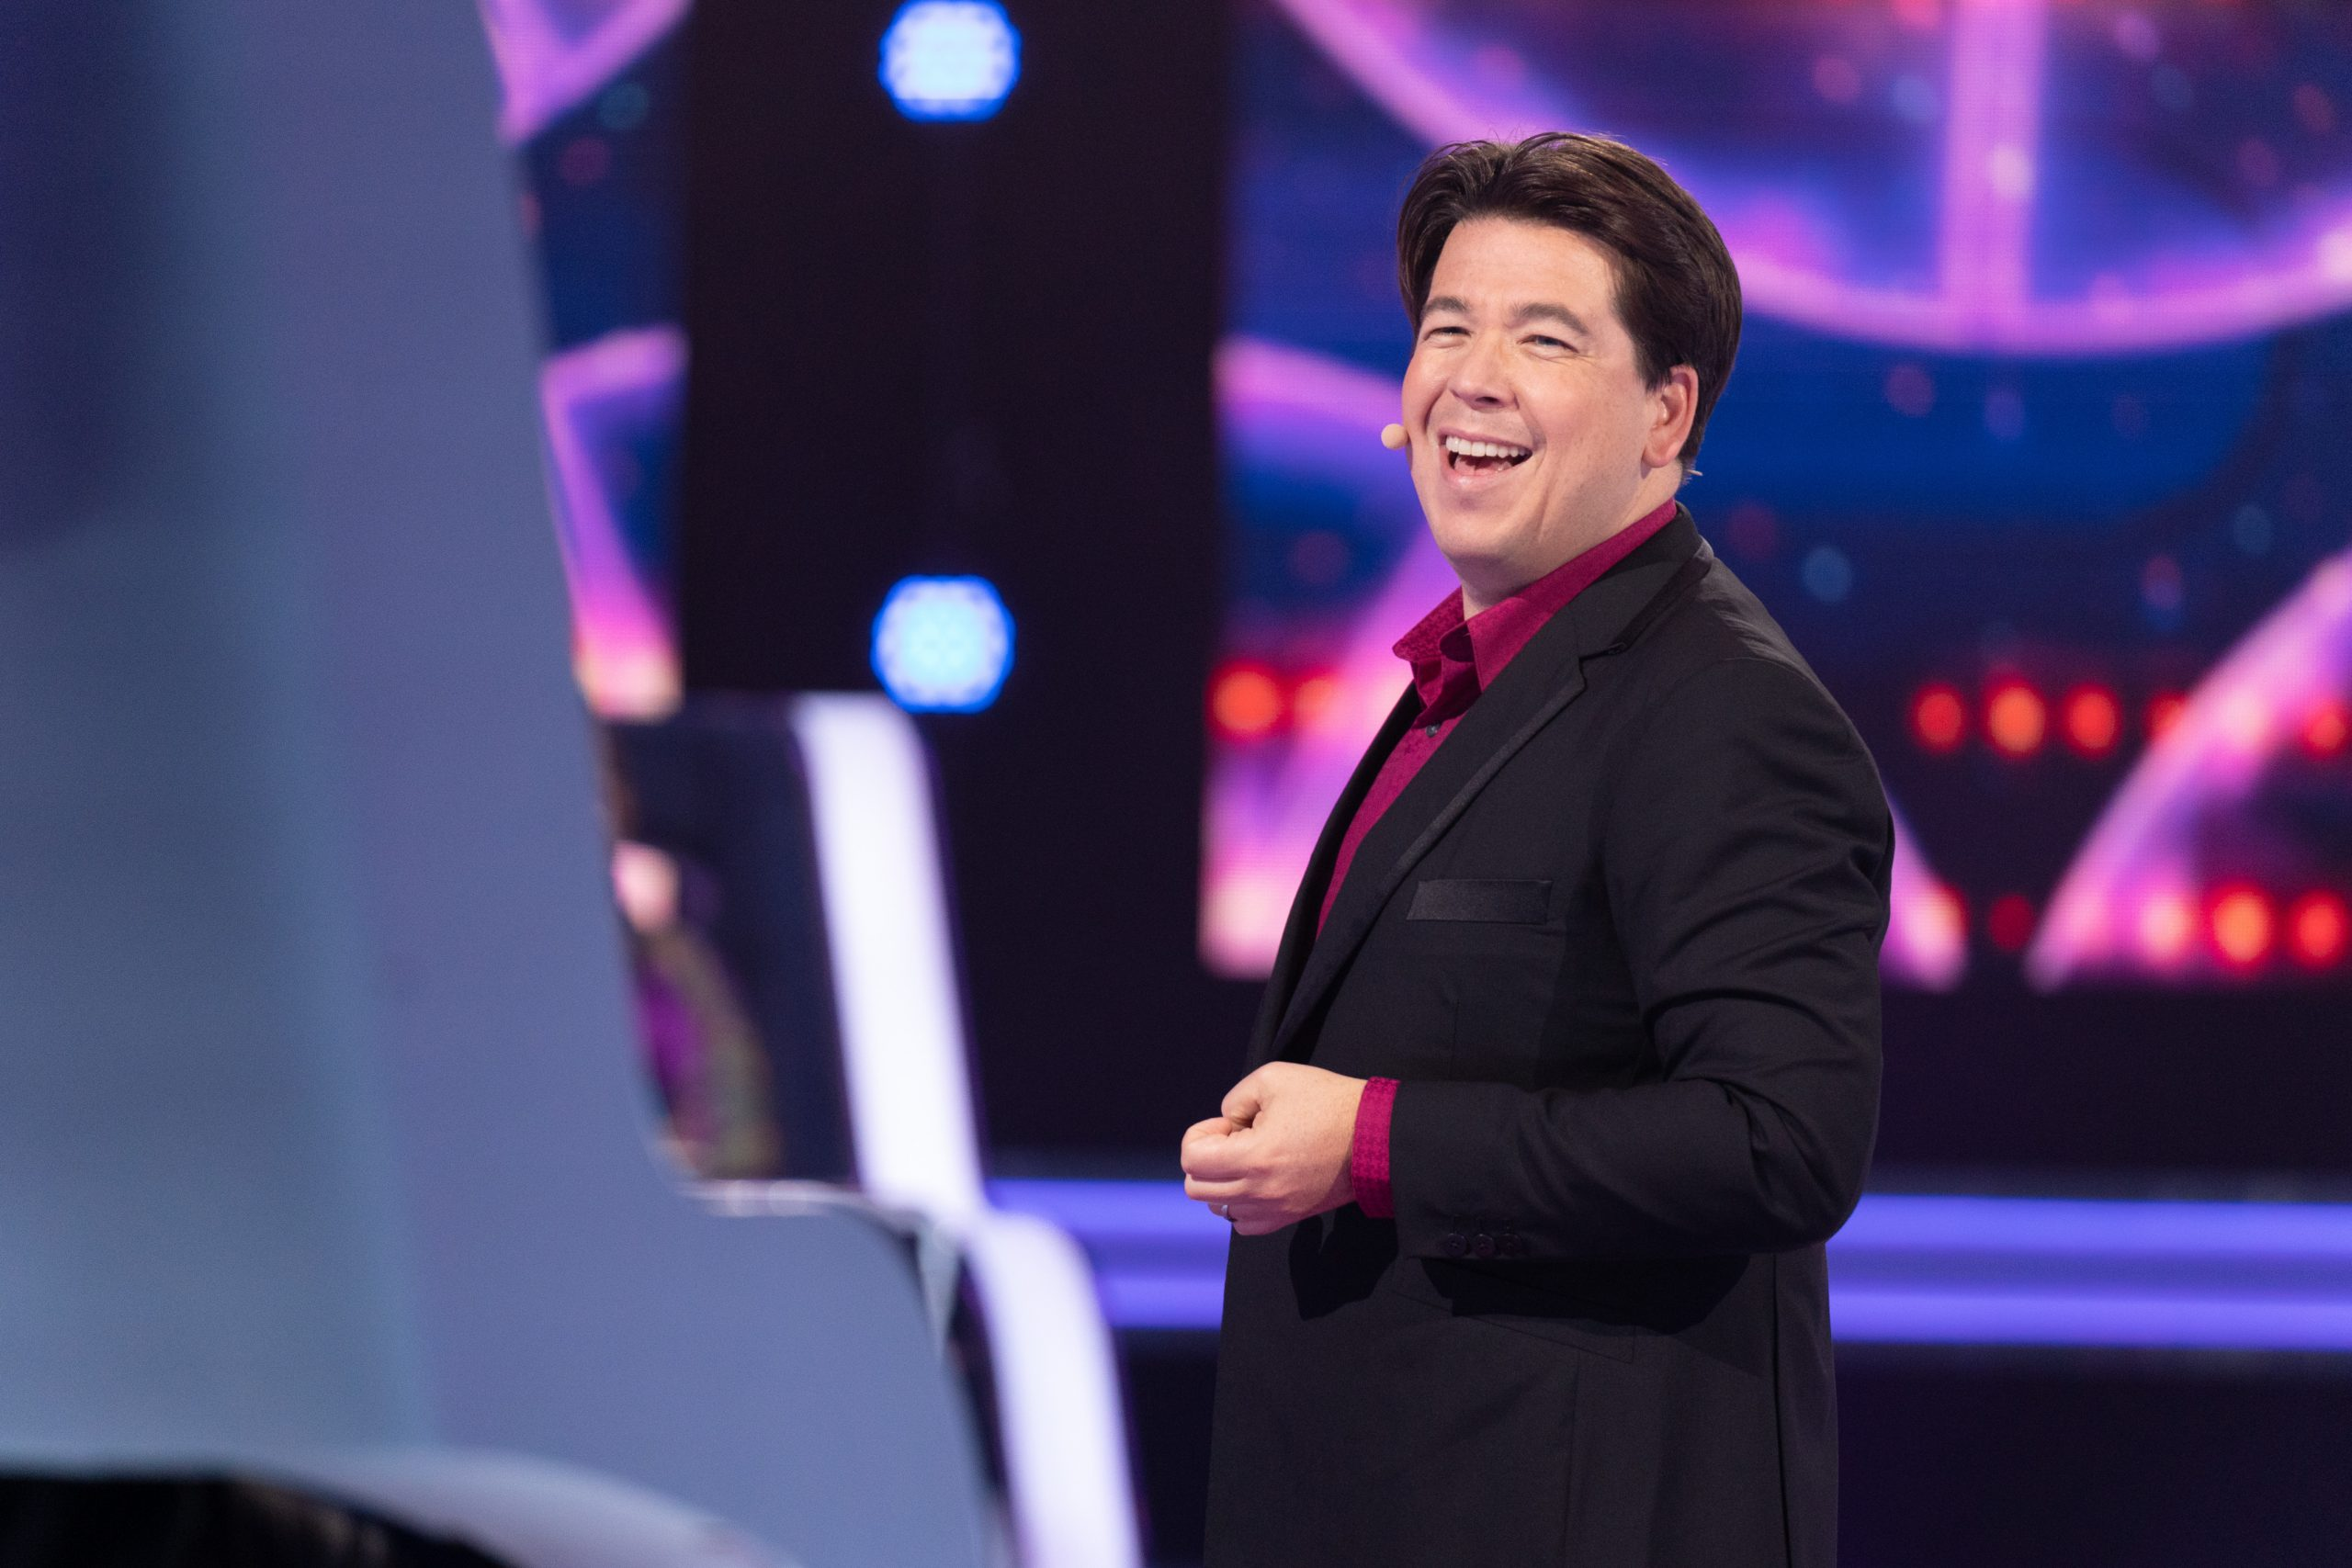 Michael McIntyre en el rodaje de The Wheel